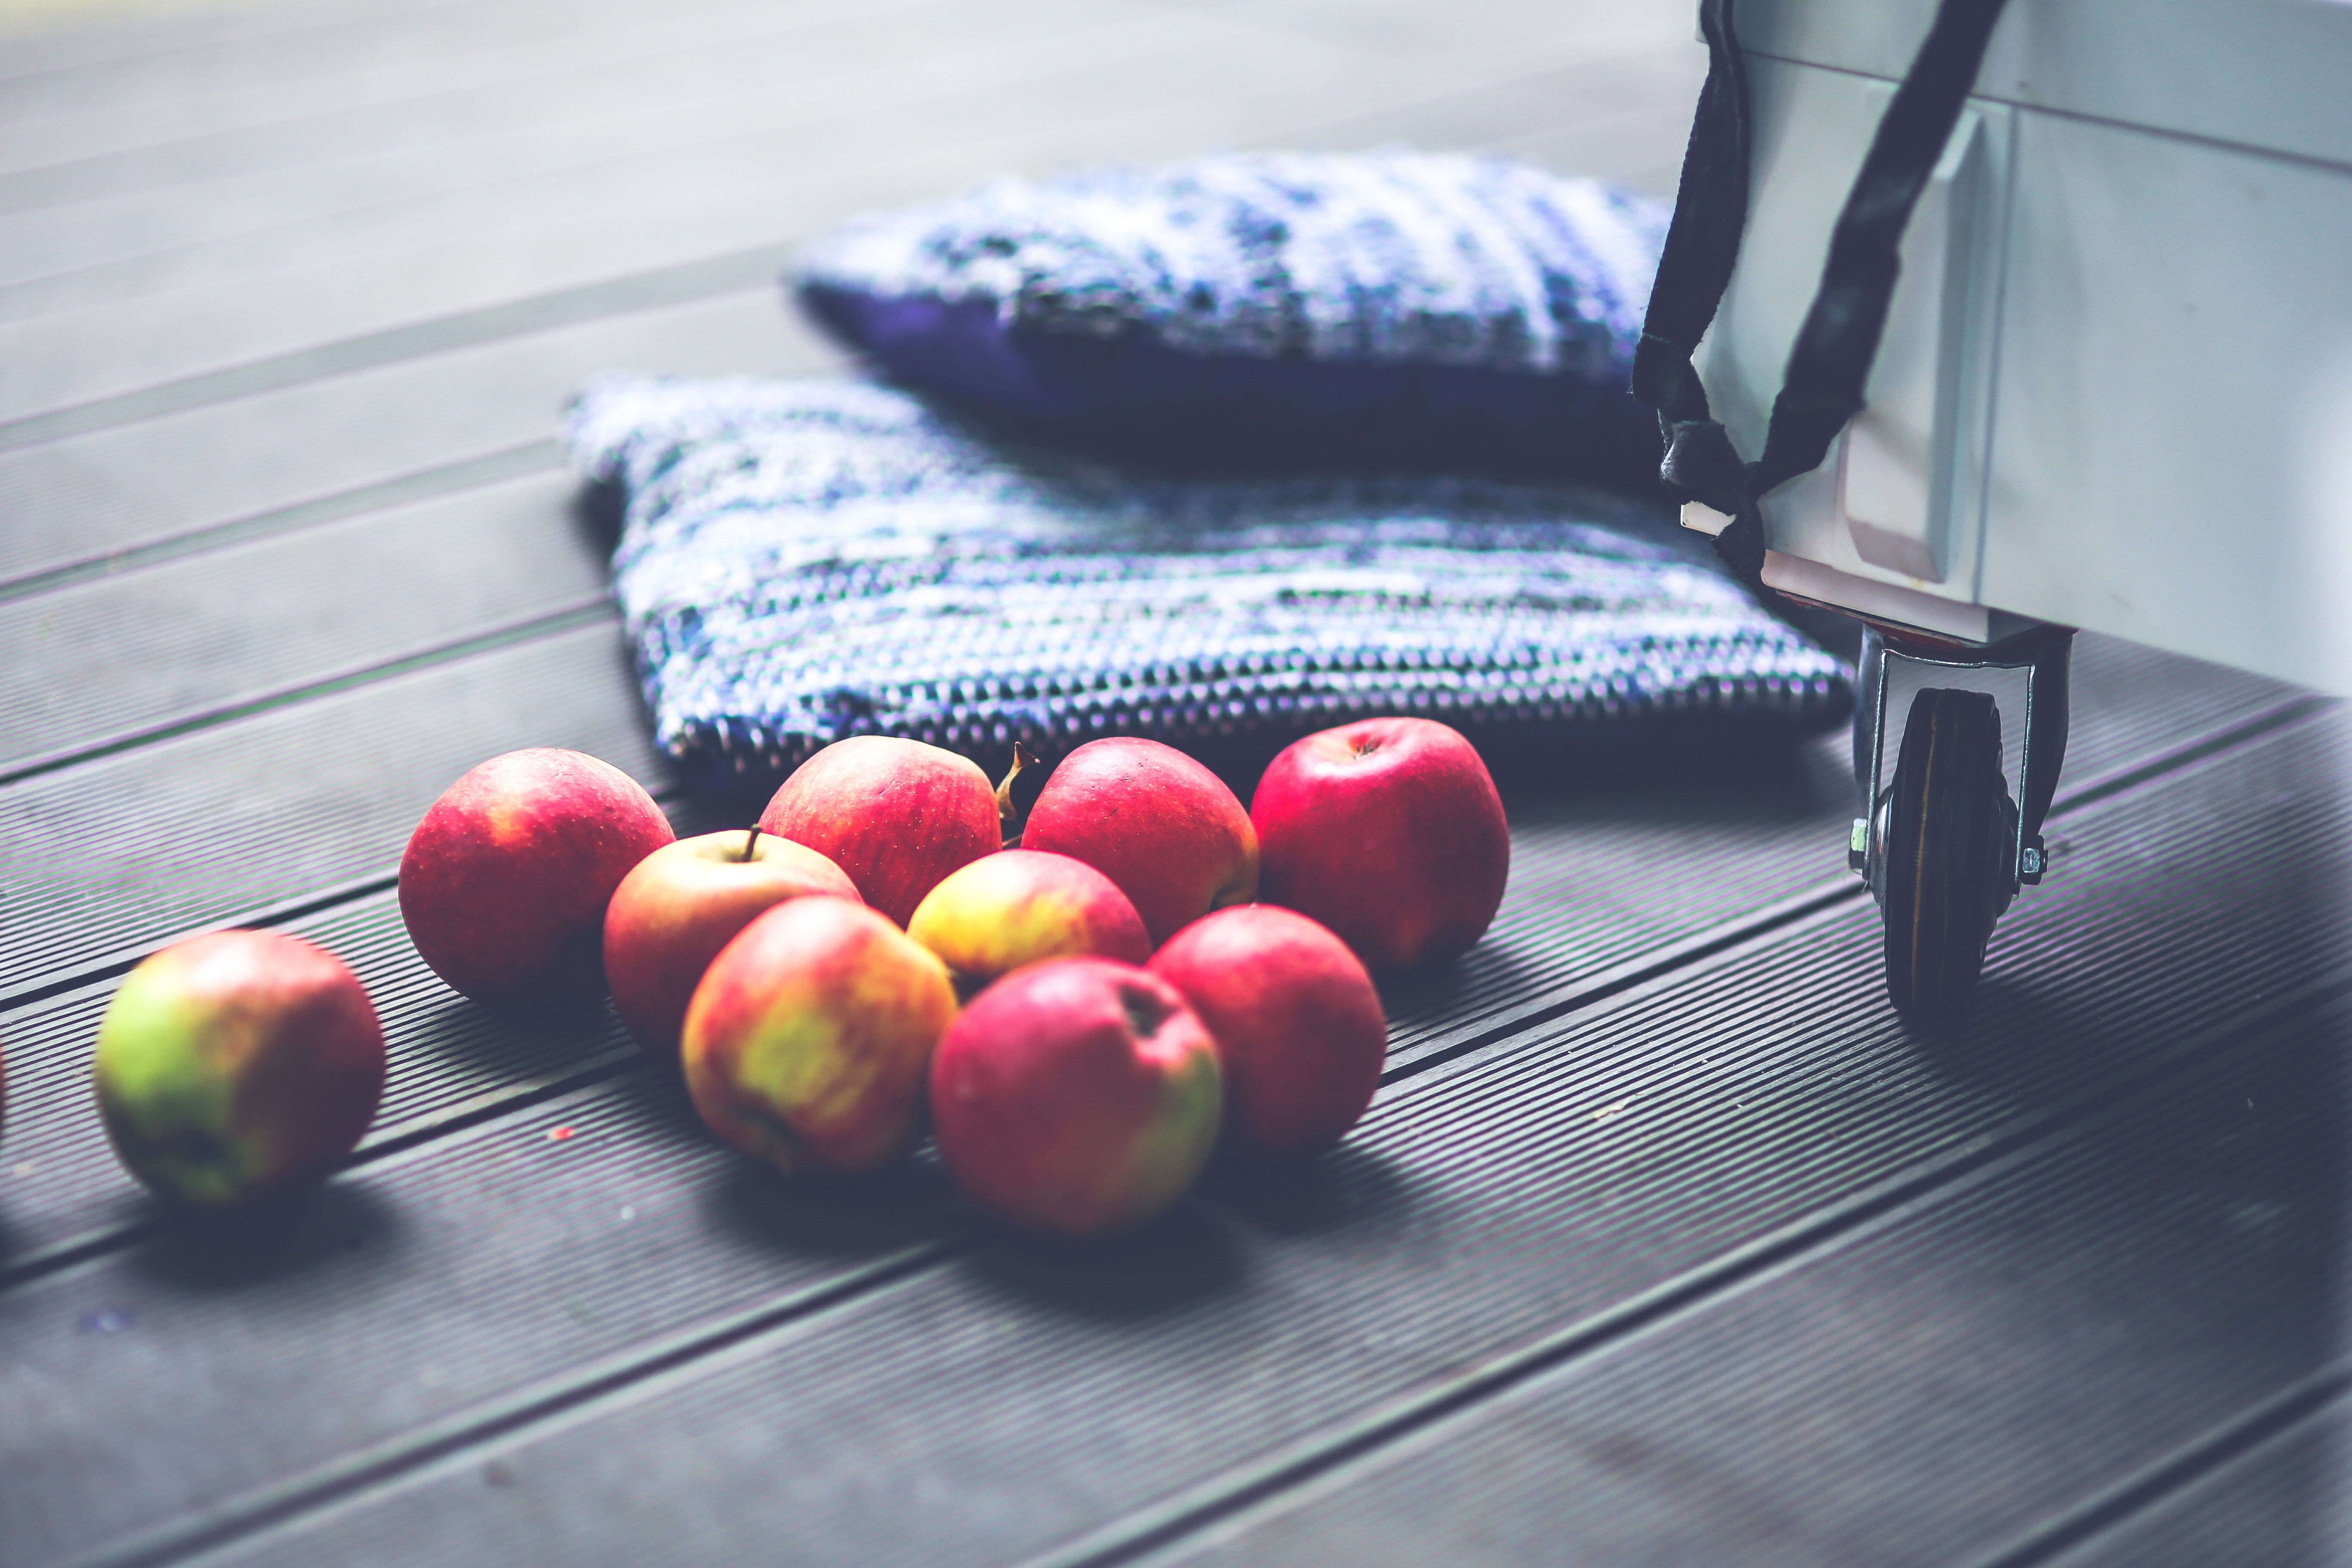 Red apples on the floor, Indoors, Wooden, Wood, Vintage, HQ Photo